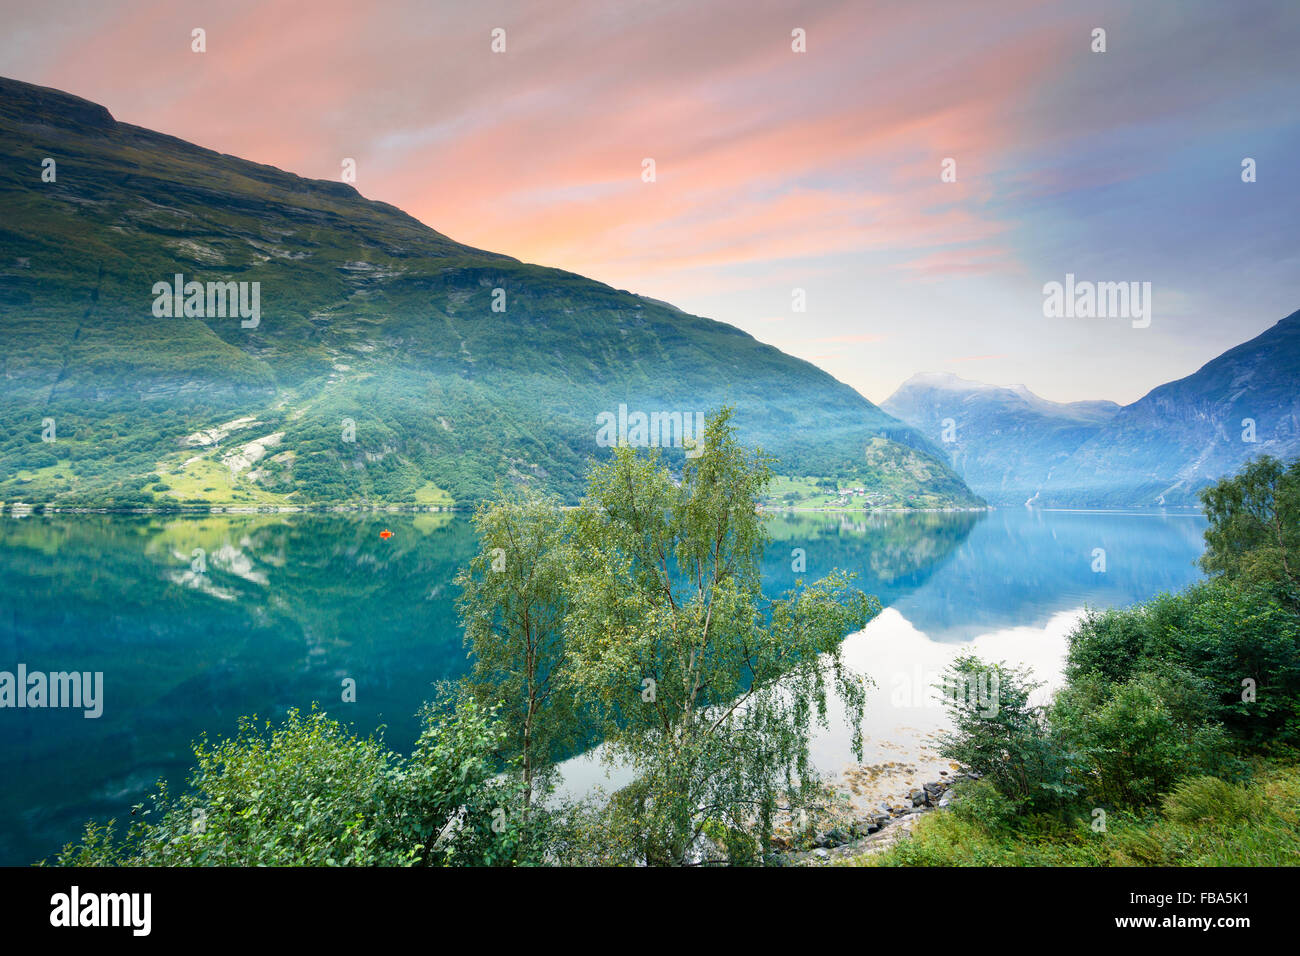 Norway, More og Romsdal, Sunnmore, View of lake in mountains at sunrise - Stock Image